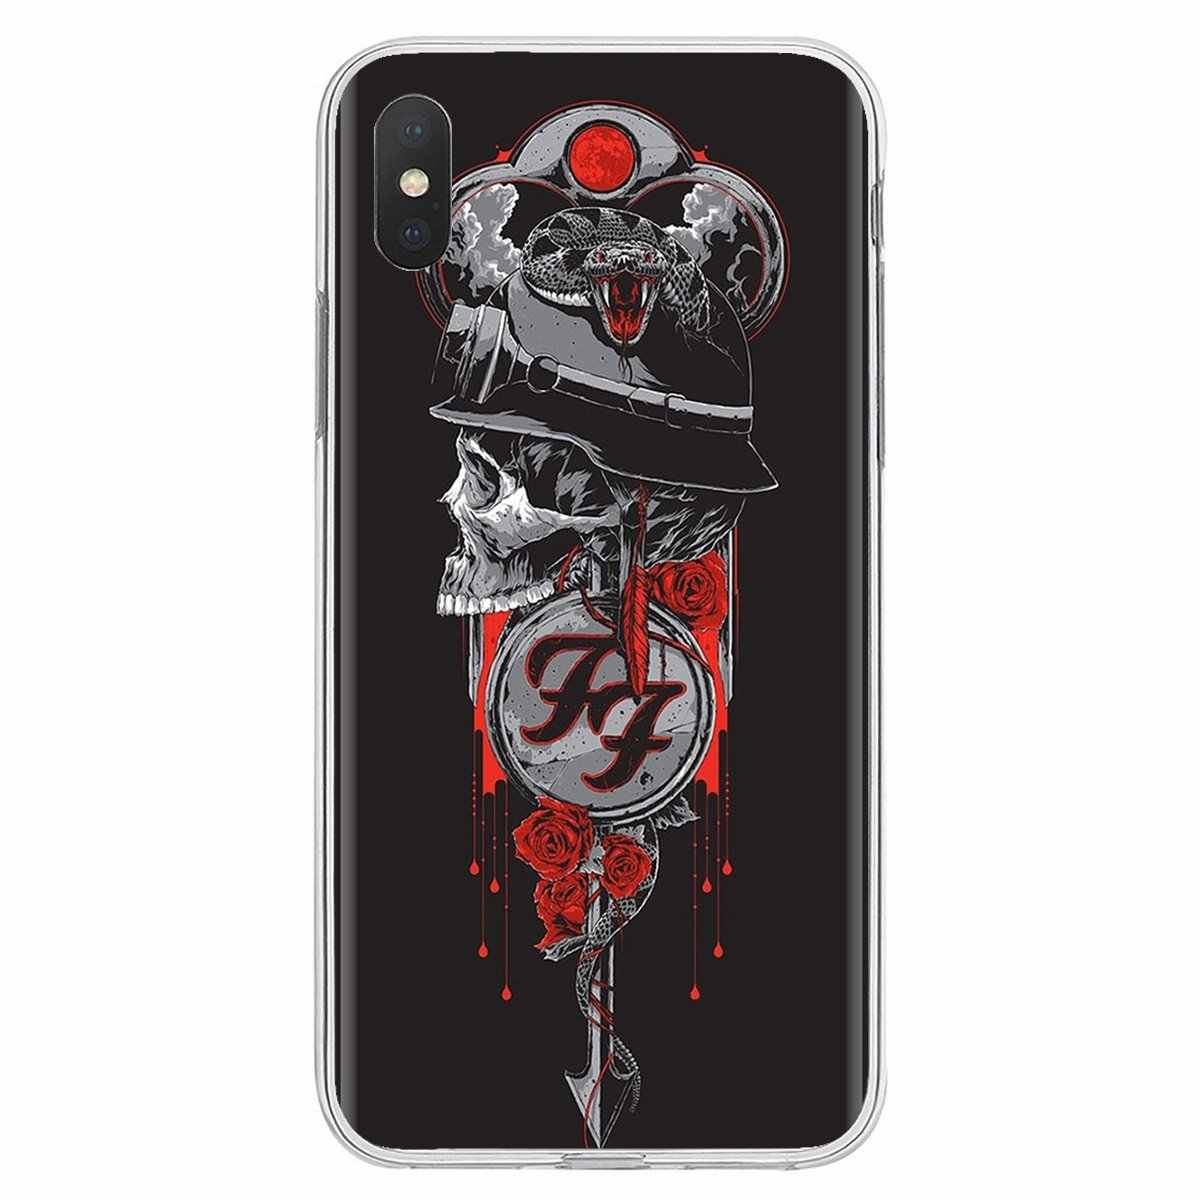 Buy Silicone Phone Case famous Rock Band FOO FIGHTERS For iPhone 11 Pro 4 4S 5 5S SE 5C 6 6S 7 8 X XR XS Plus Max For iPod Touch